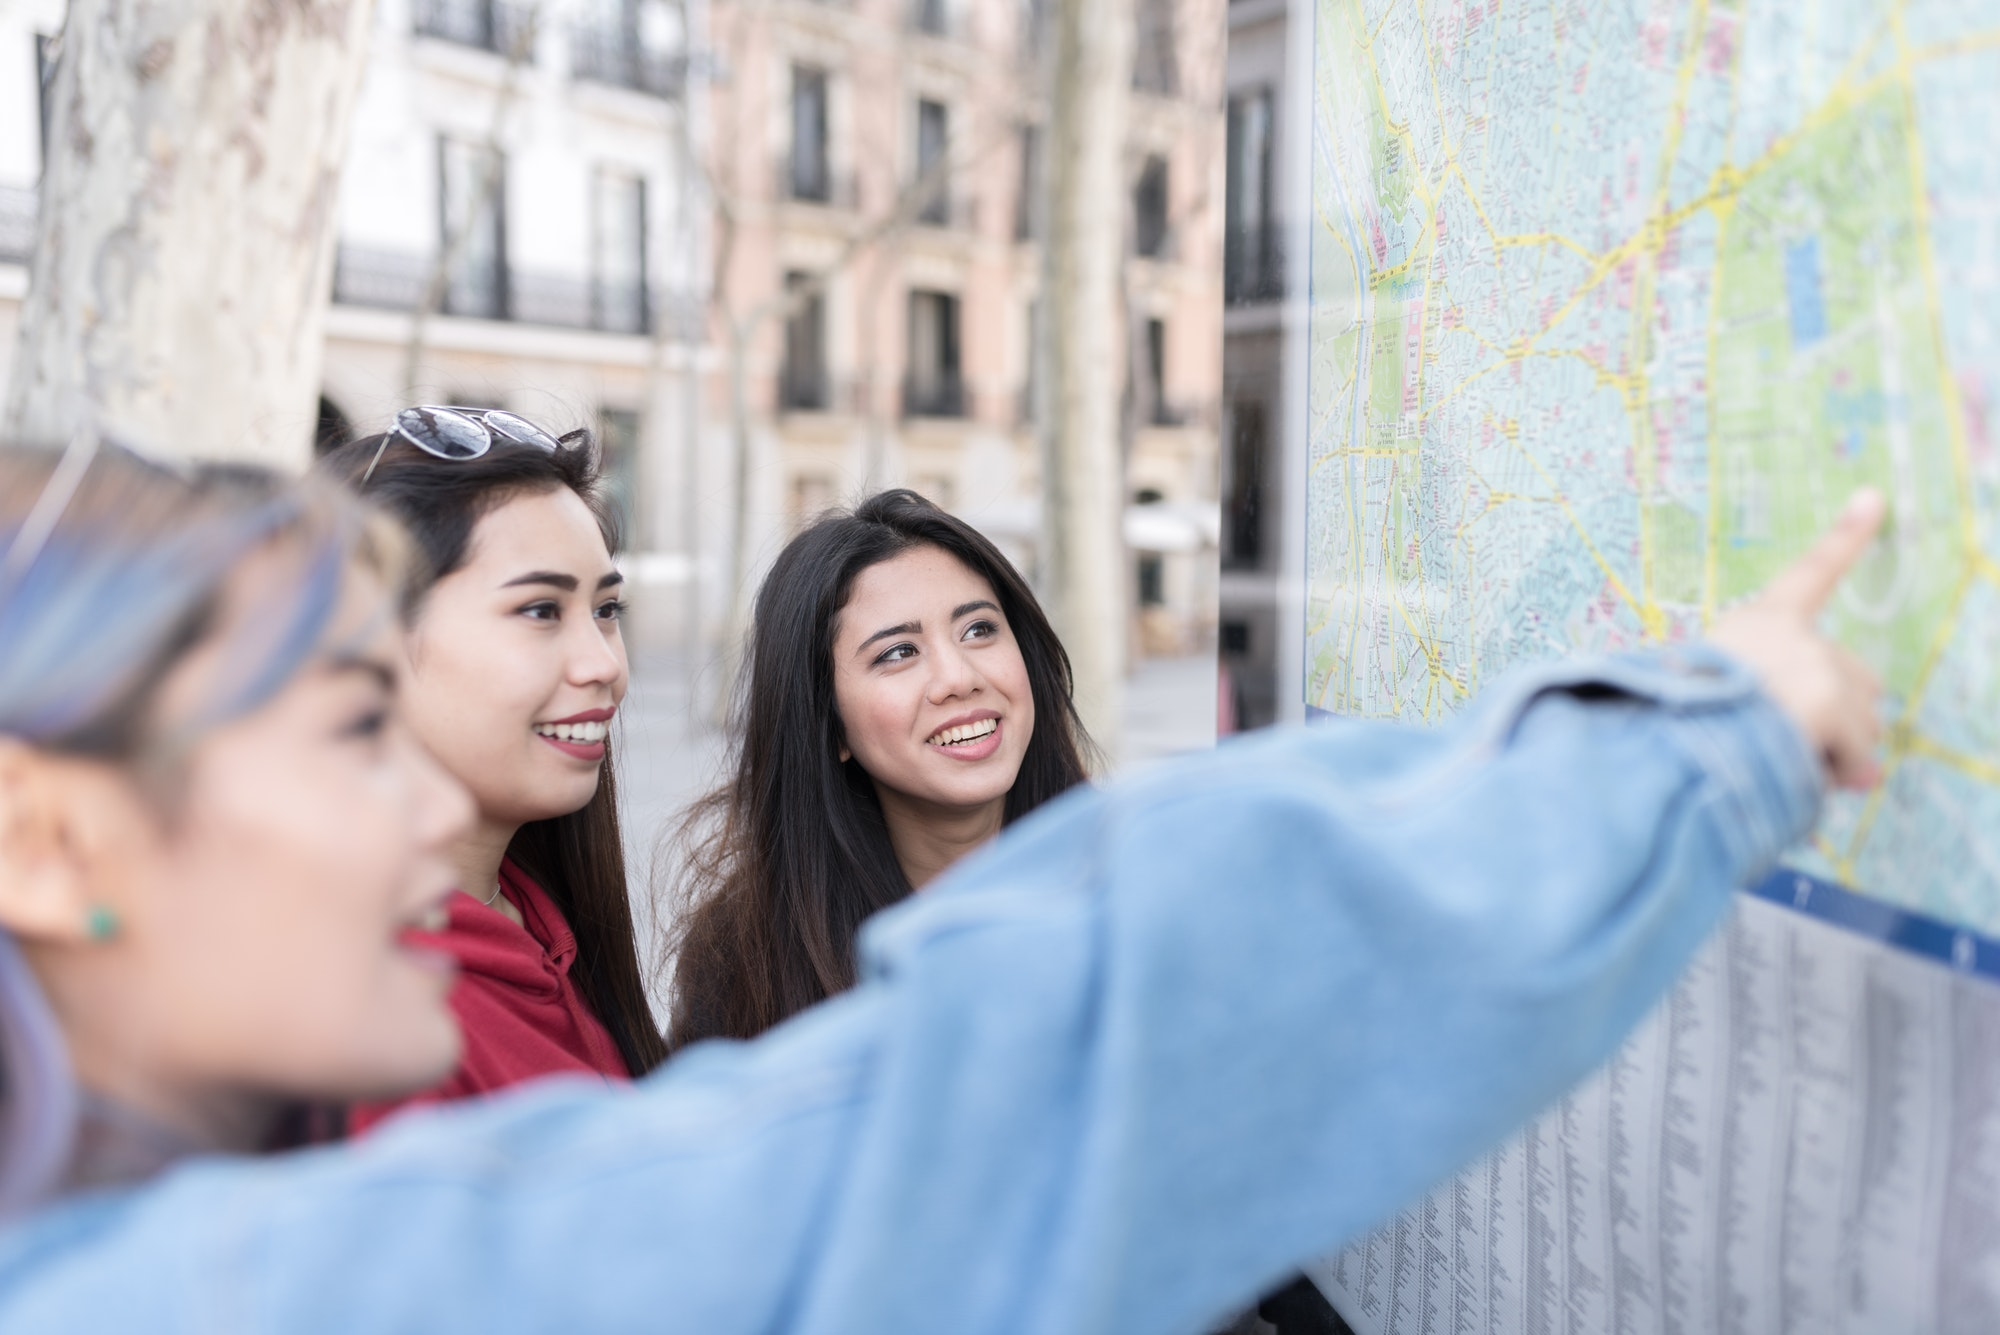 philippine friends women in Madrid looking a map on the street